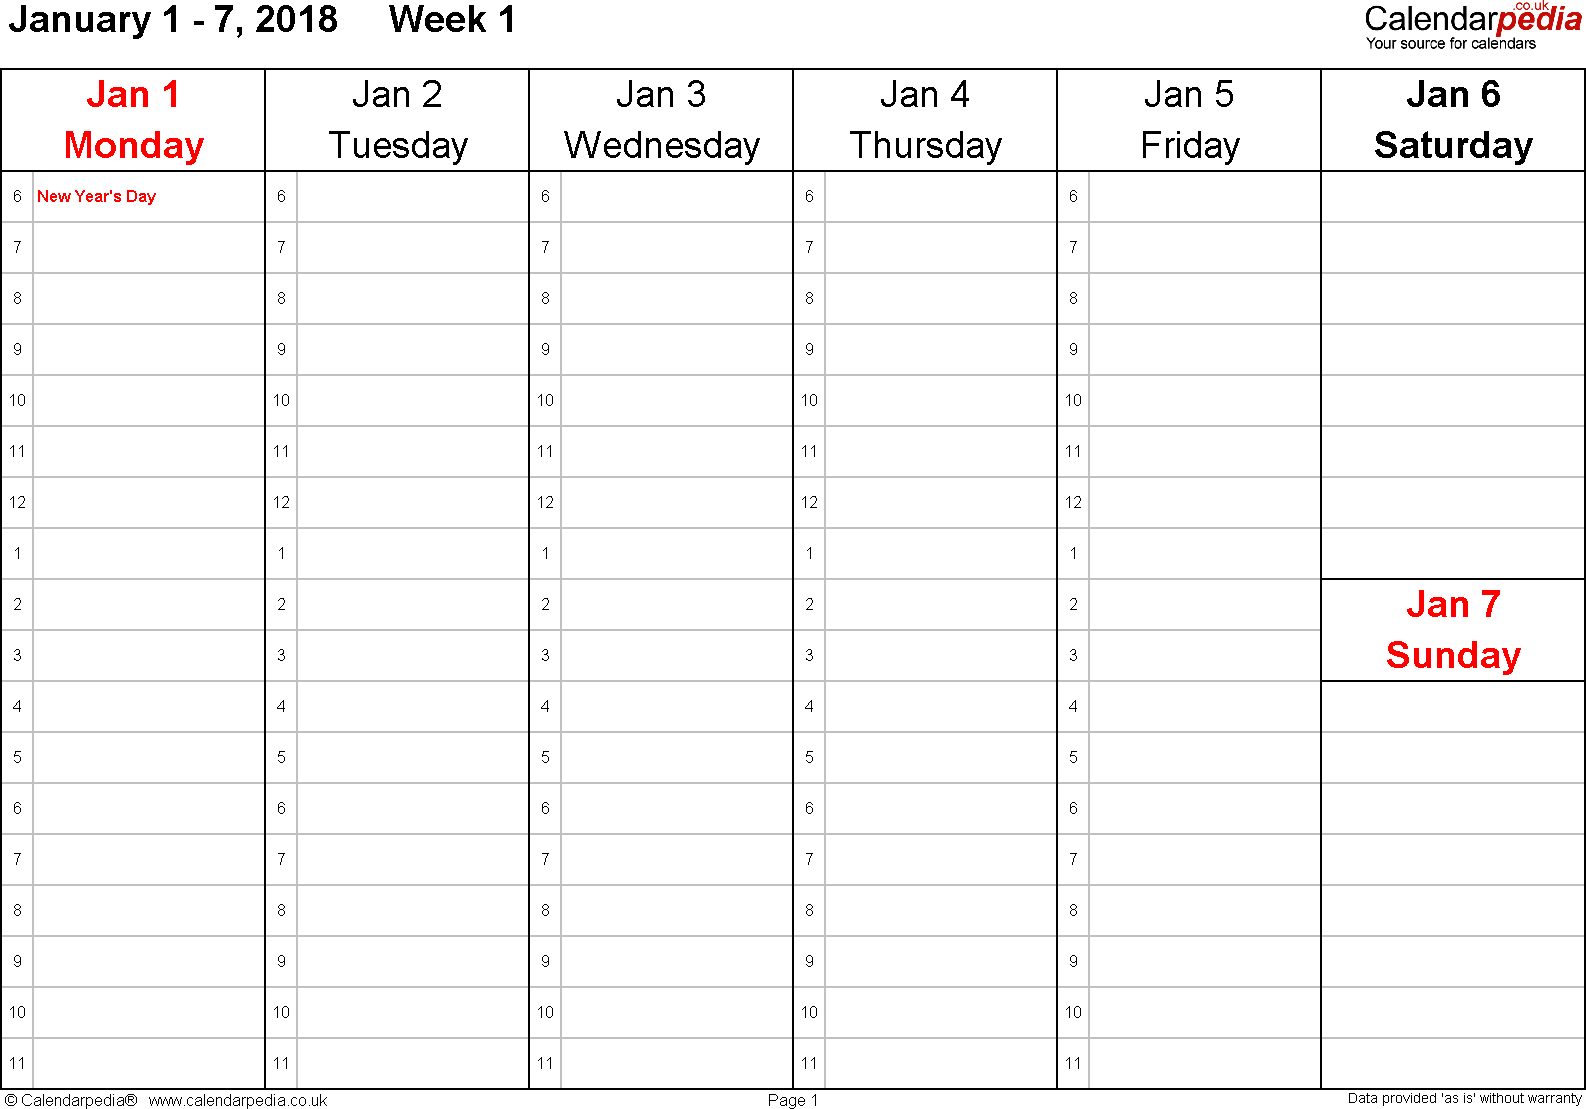 Excel template 4: Weekly calendar 2018, landscape orientation, 53 pages (1 calendar week on 1 page), time management layout (1 hour steps), Saturday & Sunday share one column